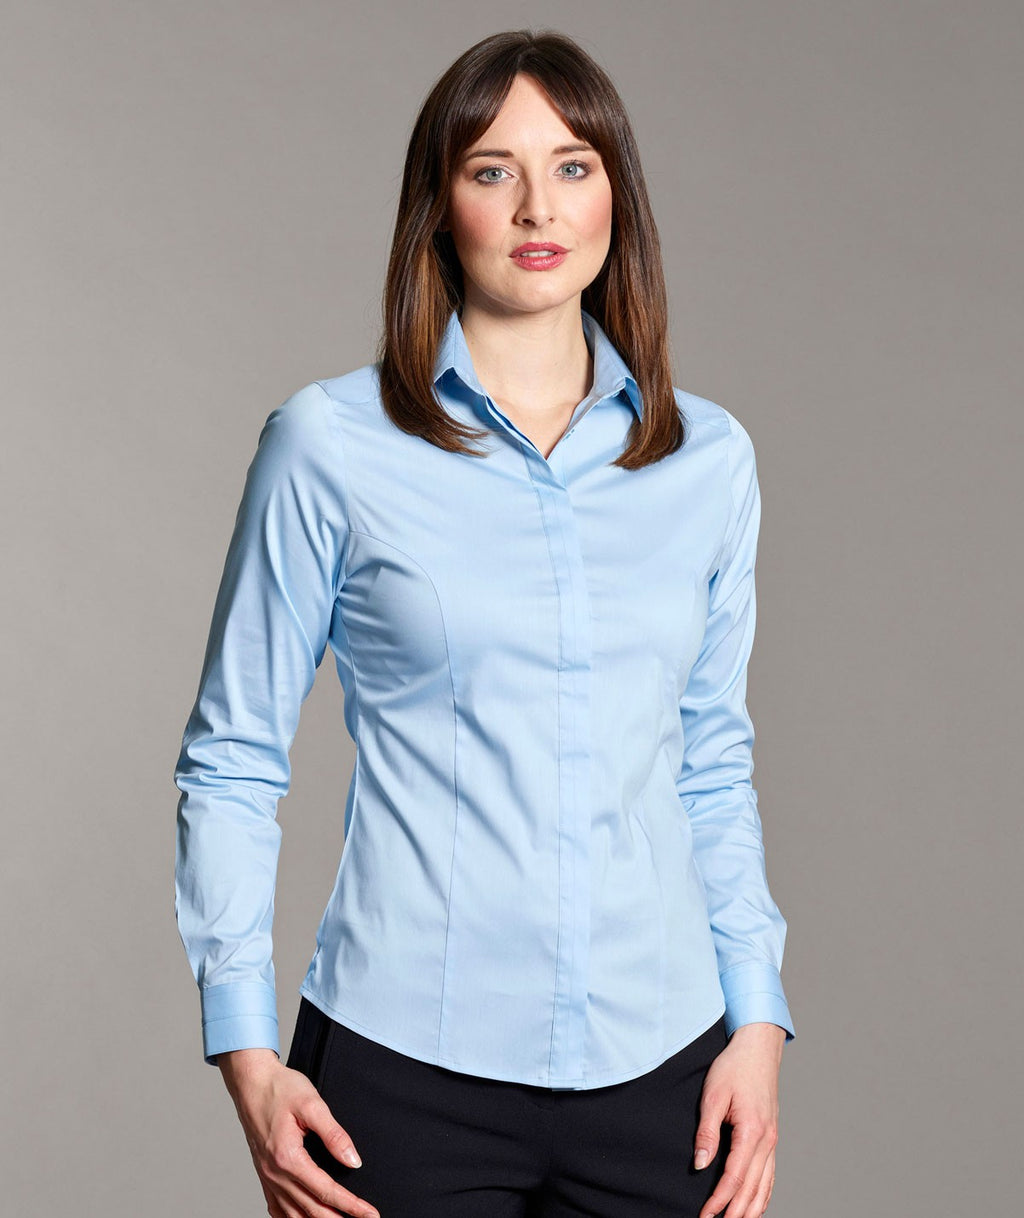 Ladies Stretch Blouse Long Sleeve (B109 Orla)